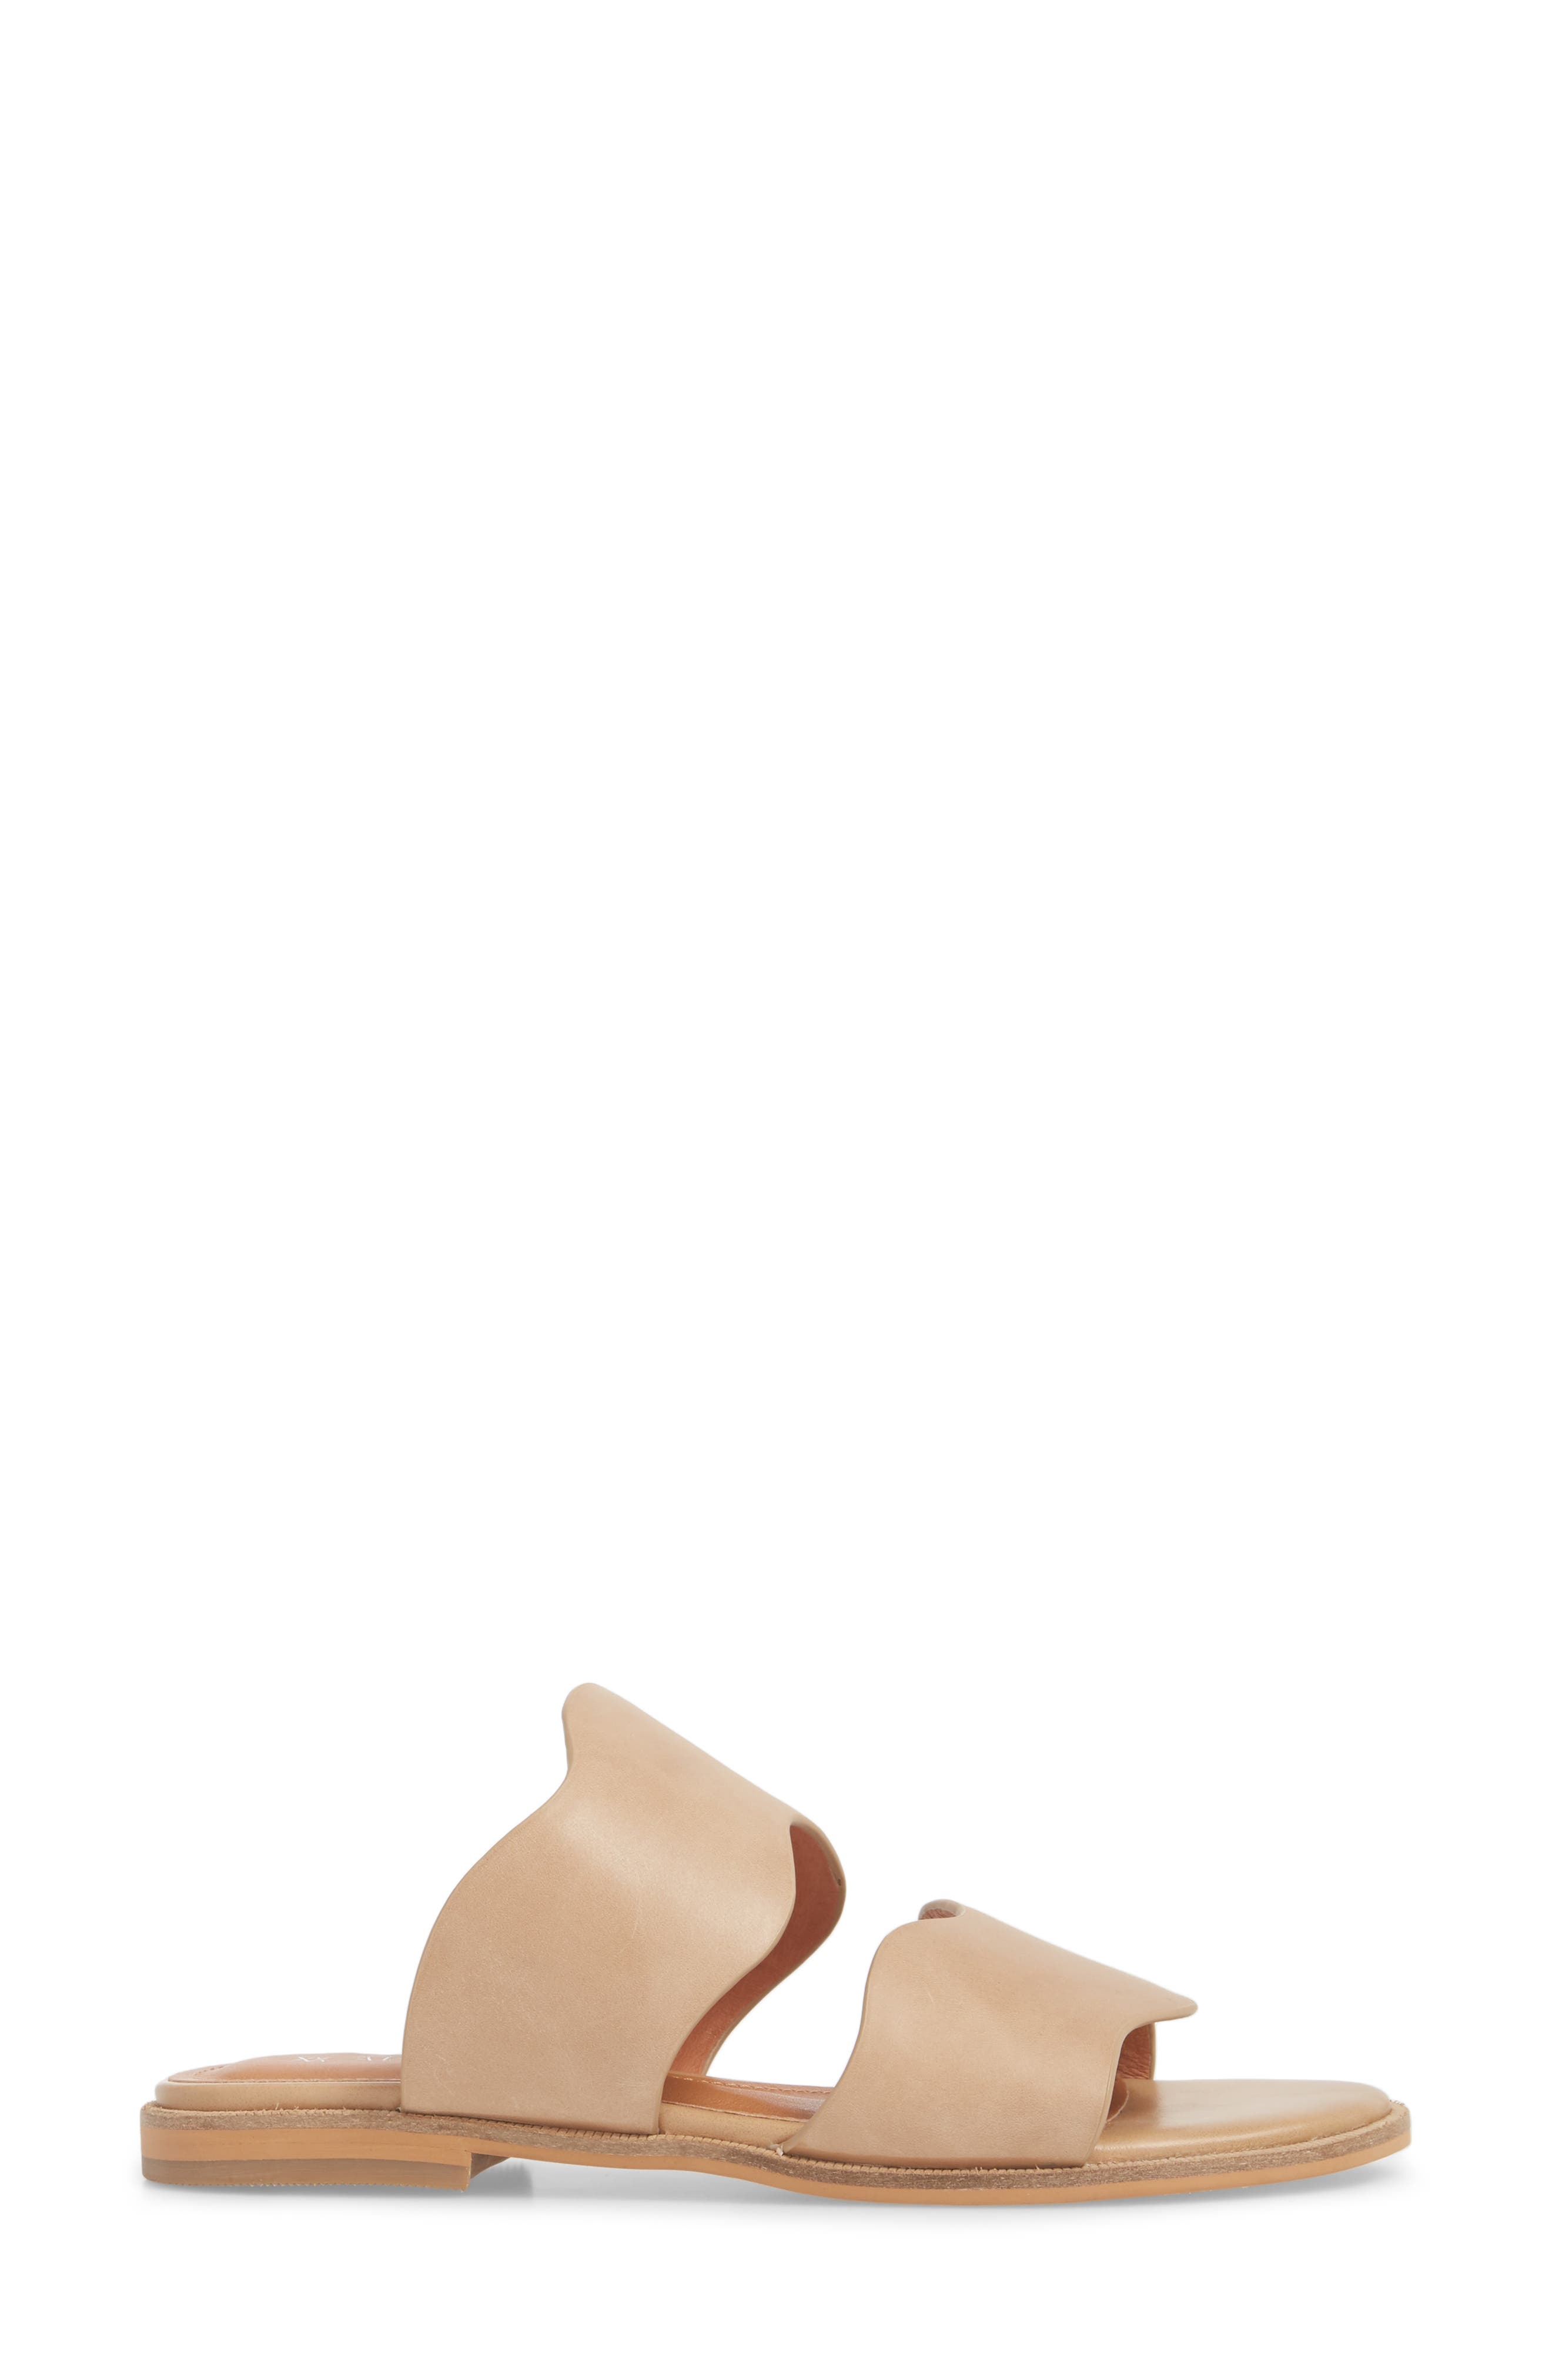 Thermos Scalloped Slide Sandal,                             Alternate thumbnail 3, color,                             Natural Leather